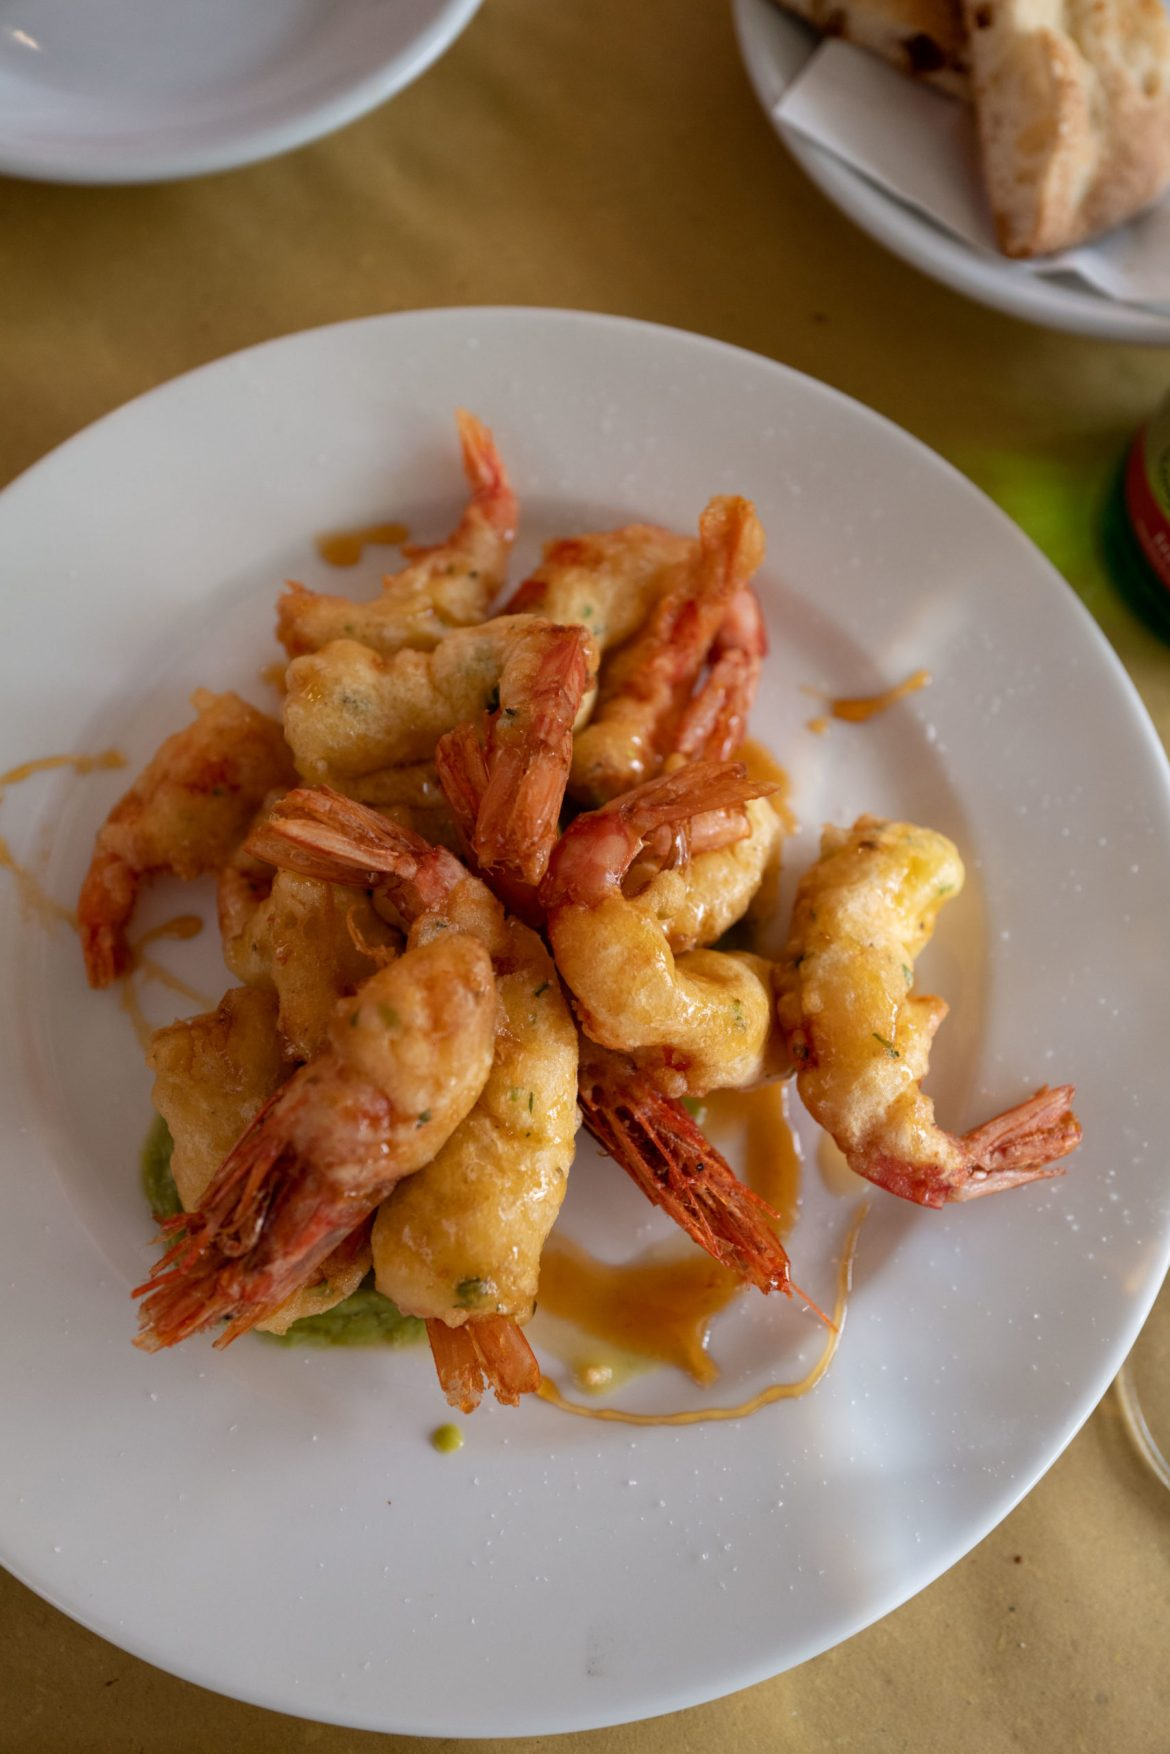 Order the shrimp tempura at Trattoria da Teo in Rome with a agrodolce sweet and sour date on top, The Taste Edit #pasta #rome #italy #shrimp